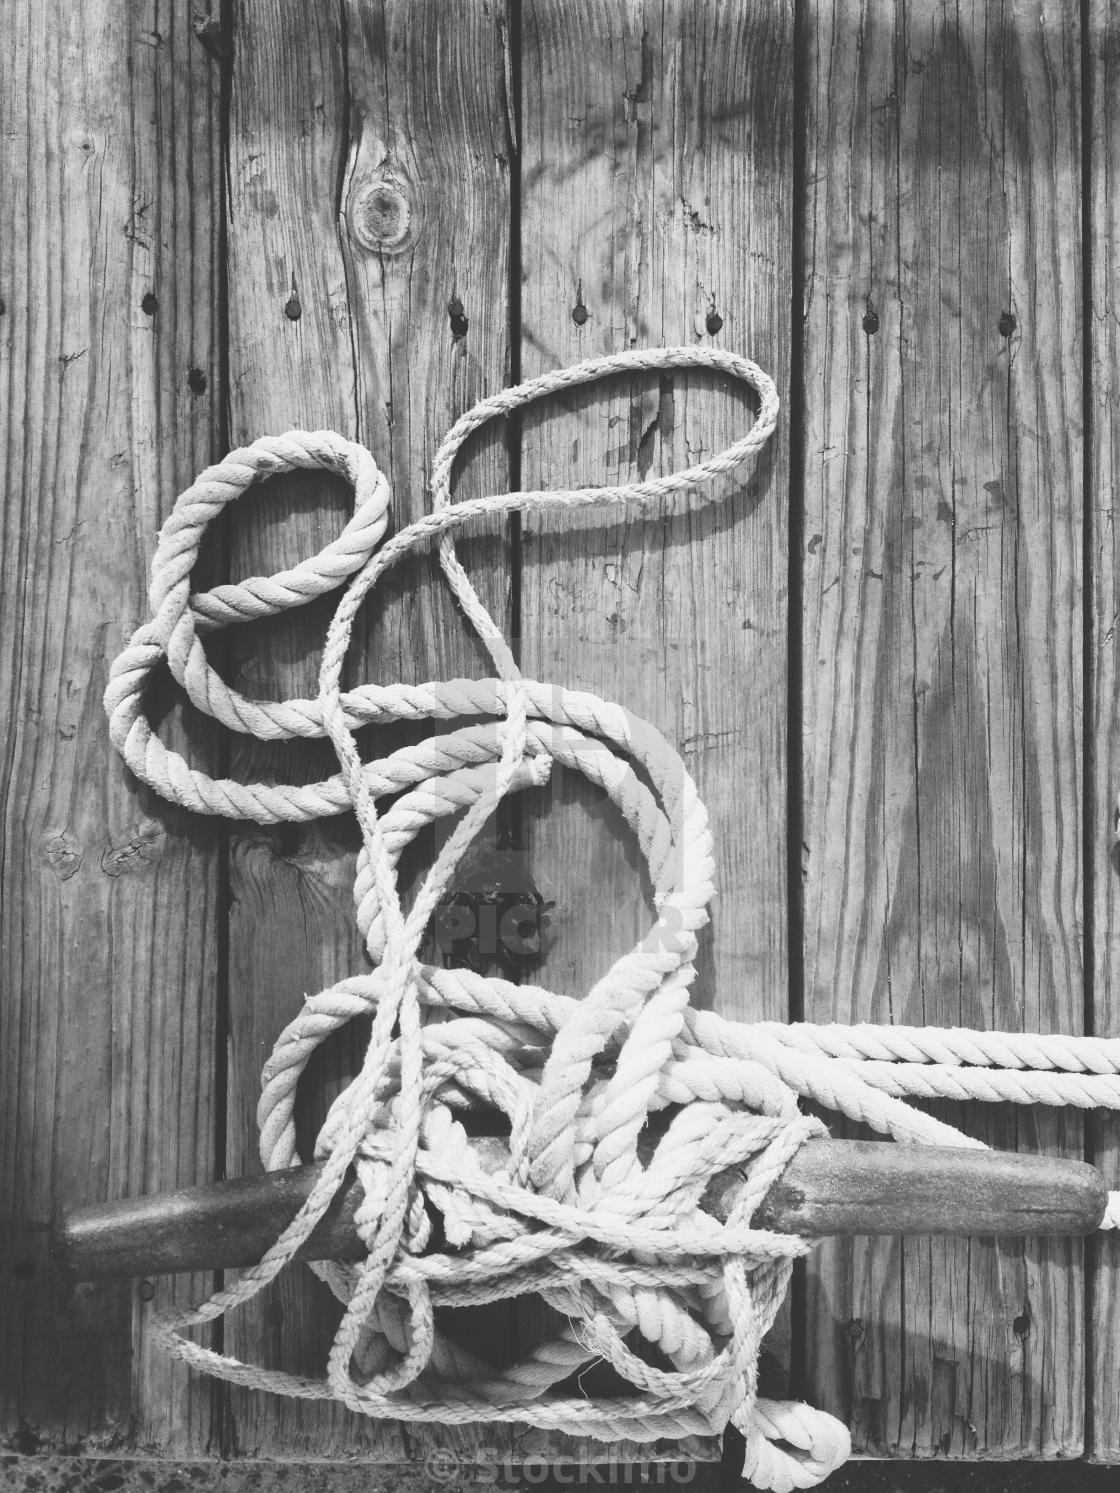 Rookies tied down on a dock in Portland Maine  - License, download